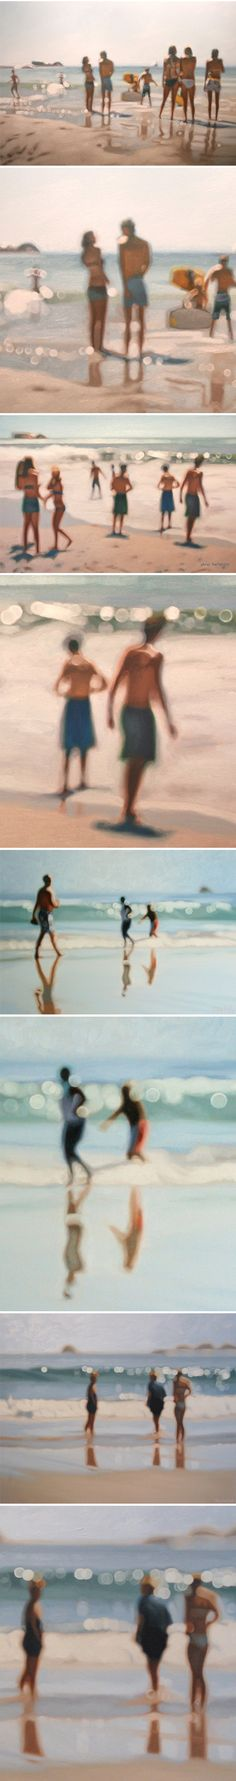 These paintings {yes, paintings?!} are by South African artist Philip Barlow.